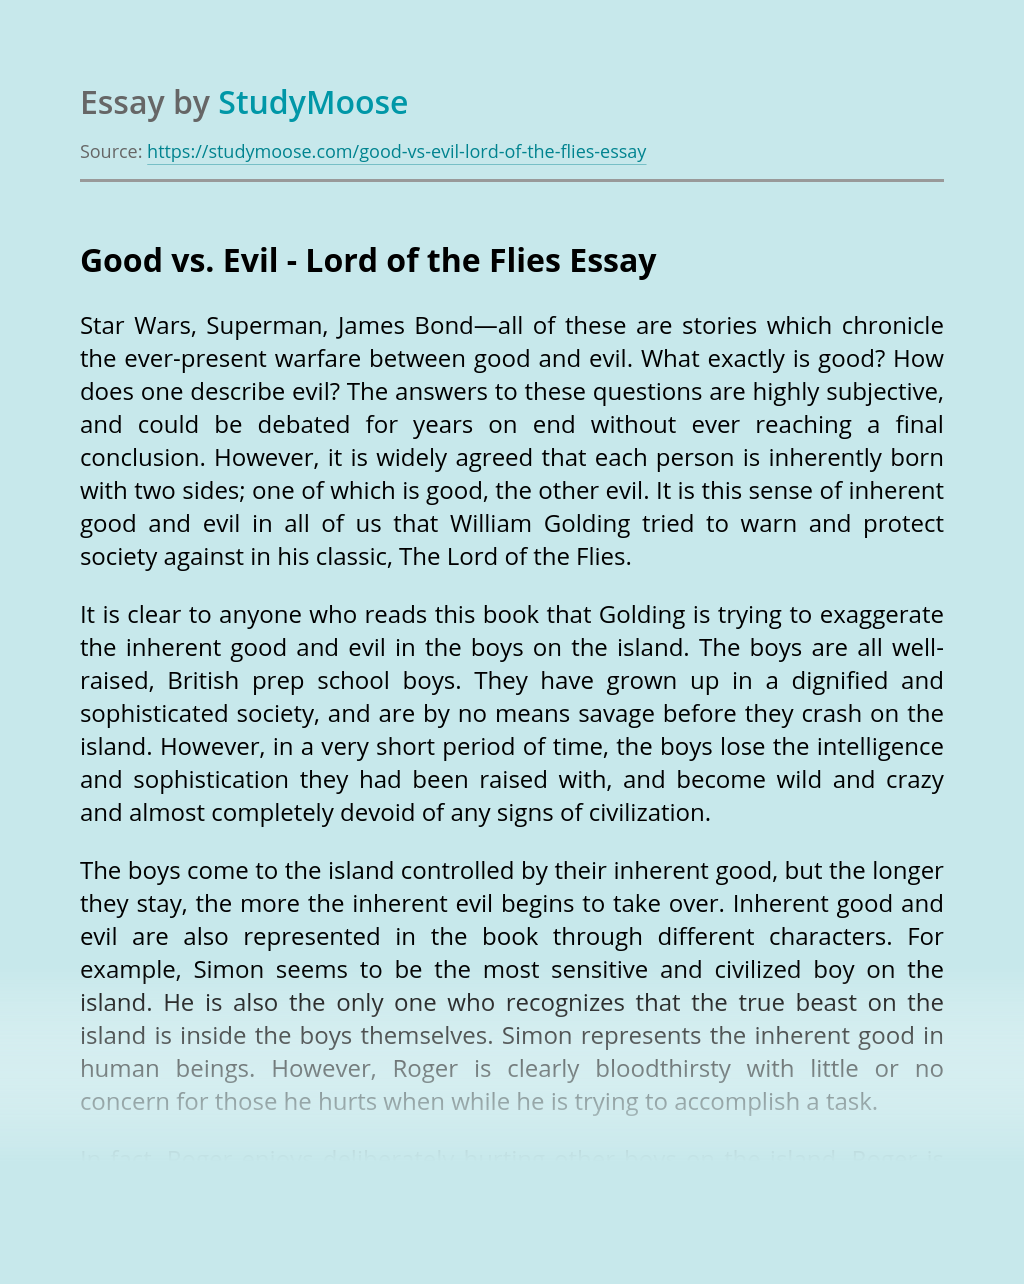 Good vs. Evil – Lord of the Flies